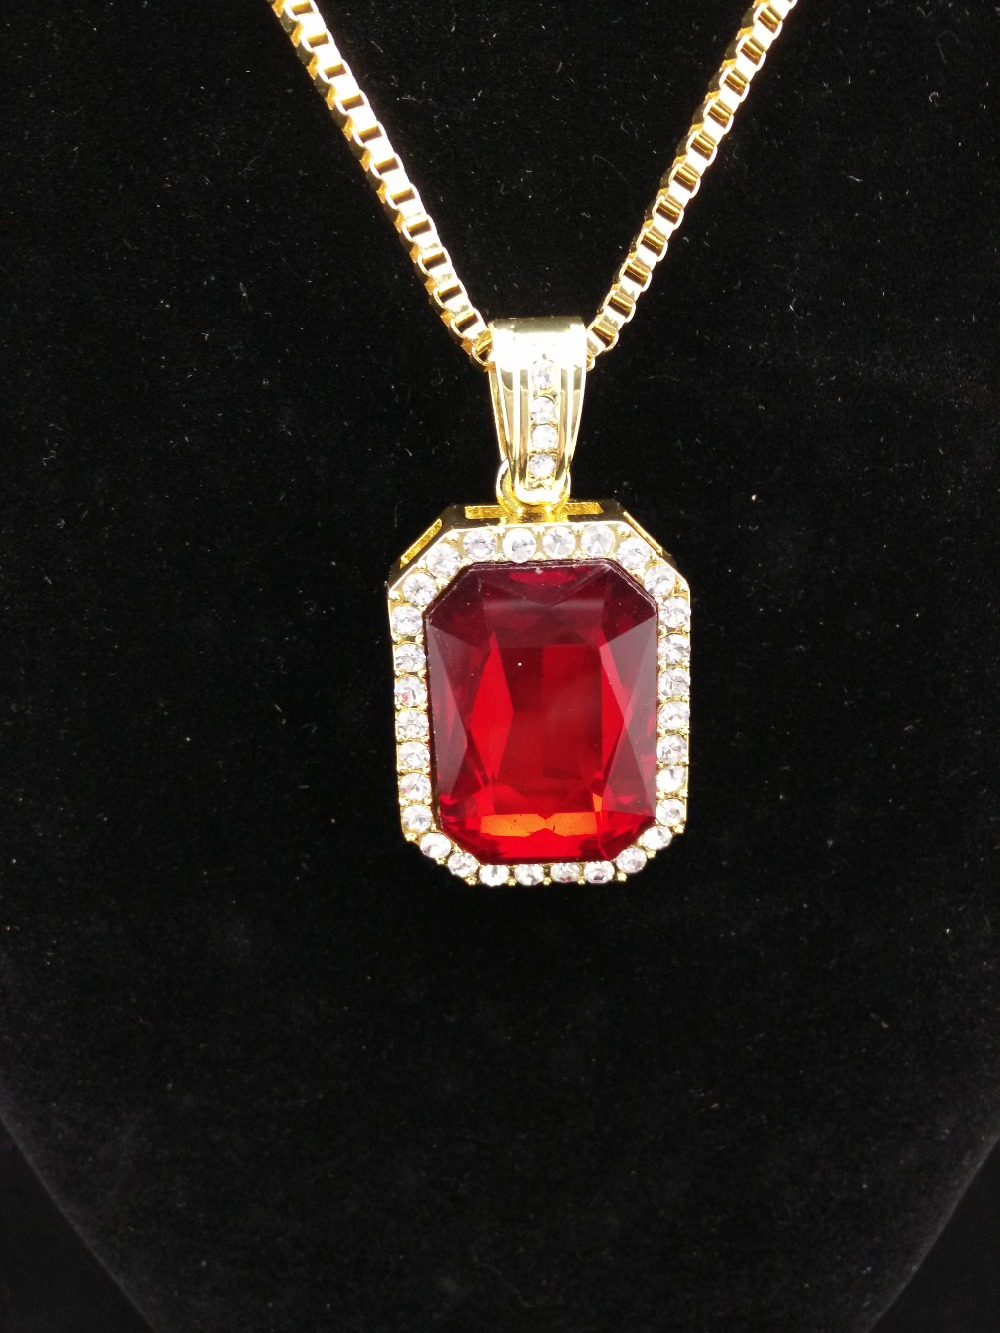 pendant id org for j jade at jagger pendanttight necklaces sale and hex drop jewelry diamond l sapphire octagon